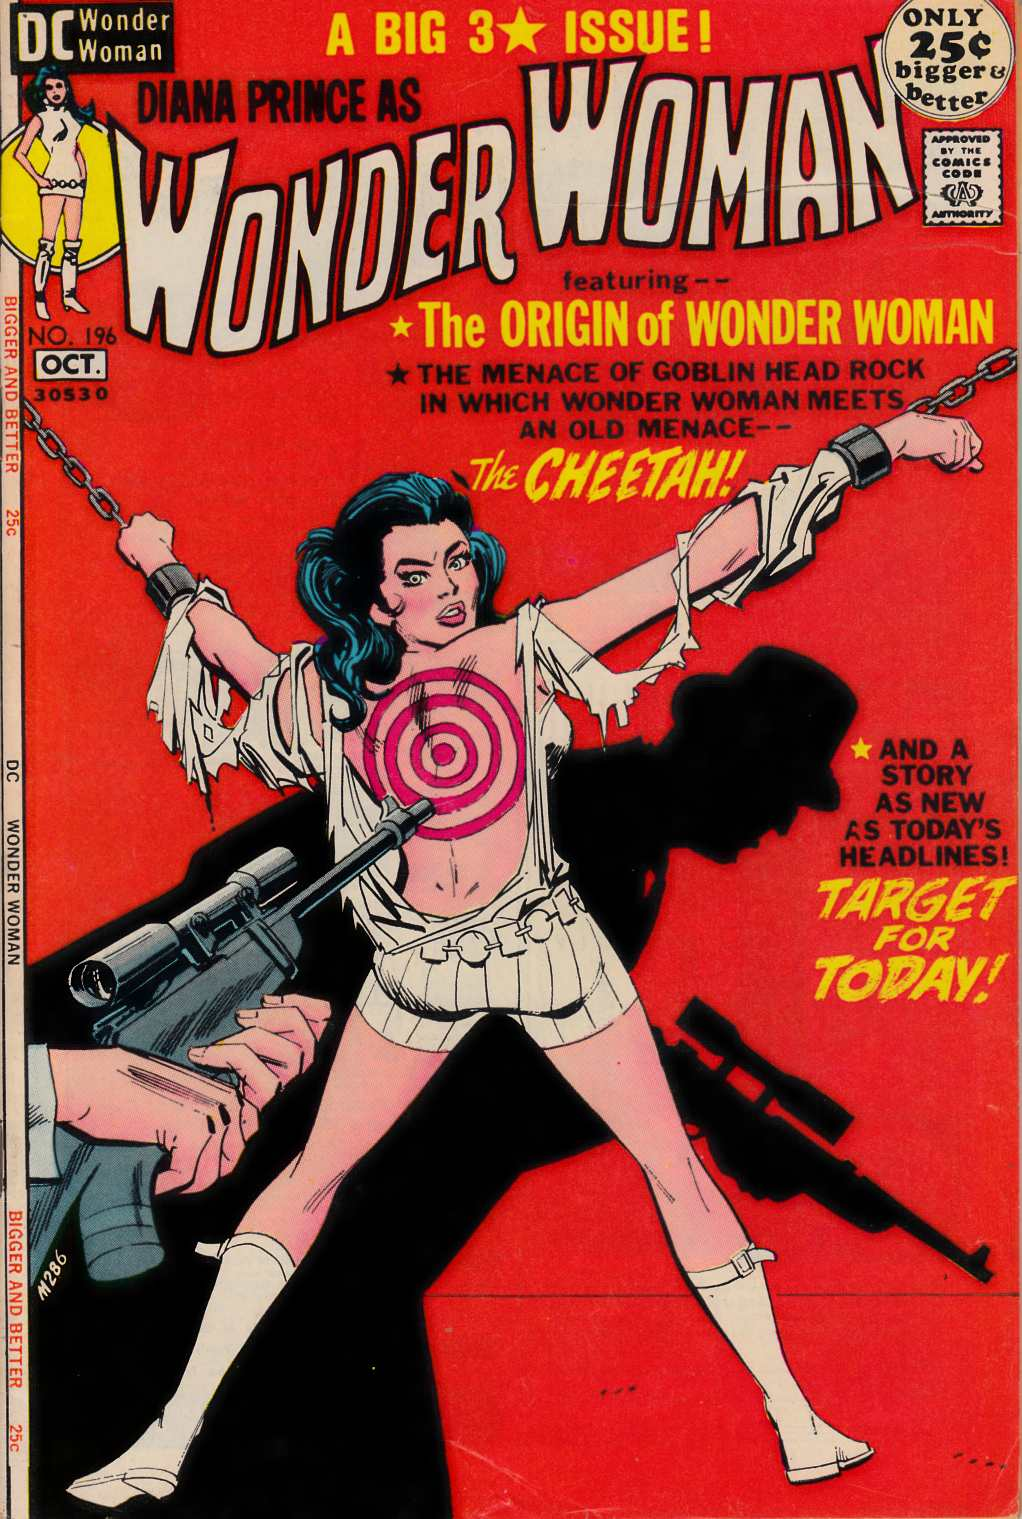 Wonder Woman #196 [DC Comic]